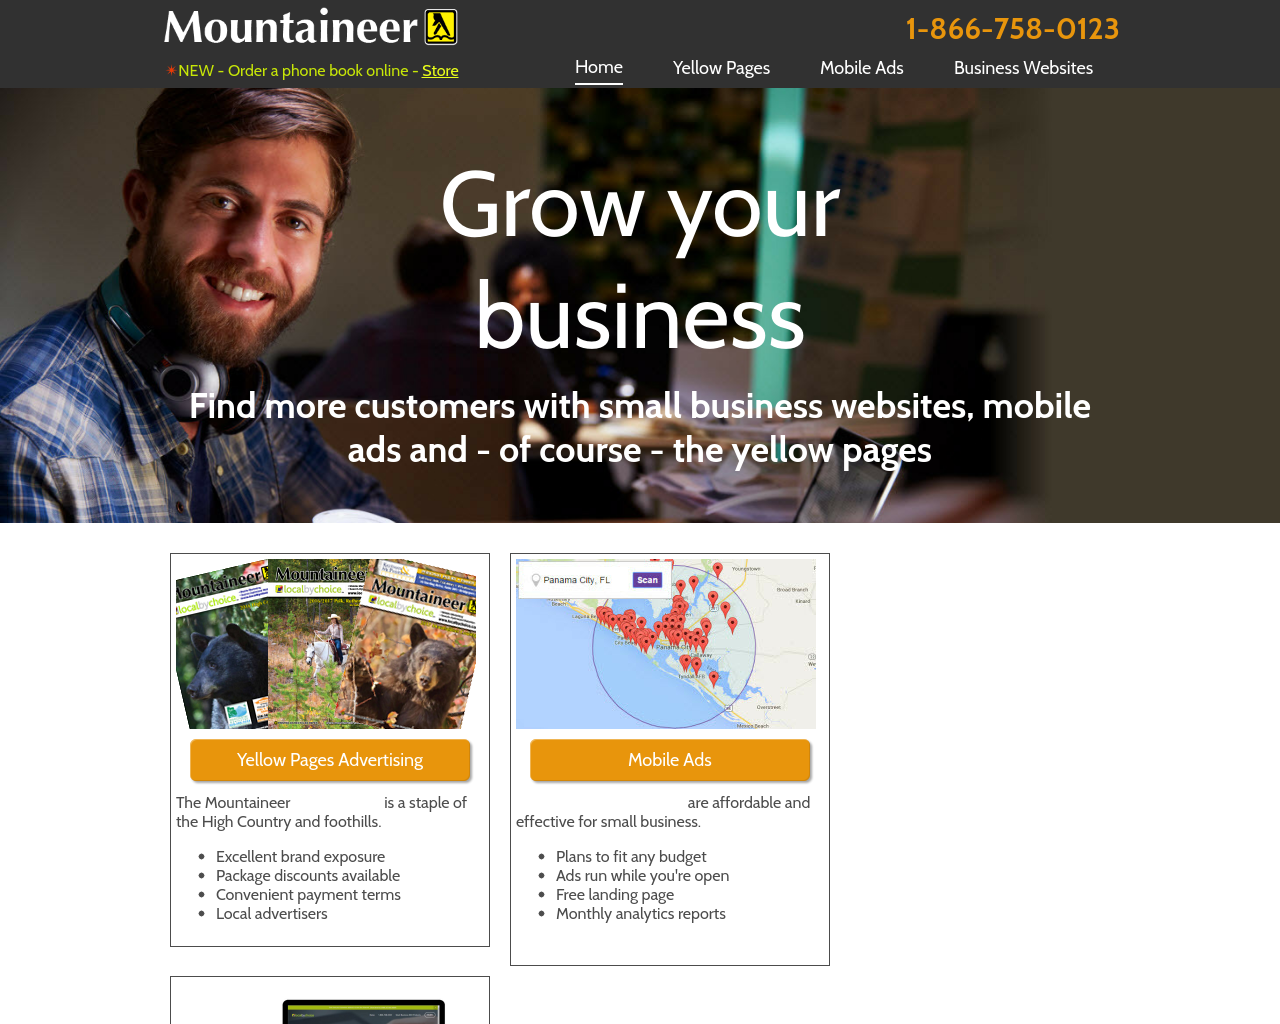 Mountaineer-Yellow-Pages,-Online-and-Mobile-Marketing-Advertising-Reviews-Pricing